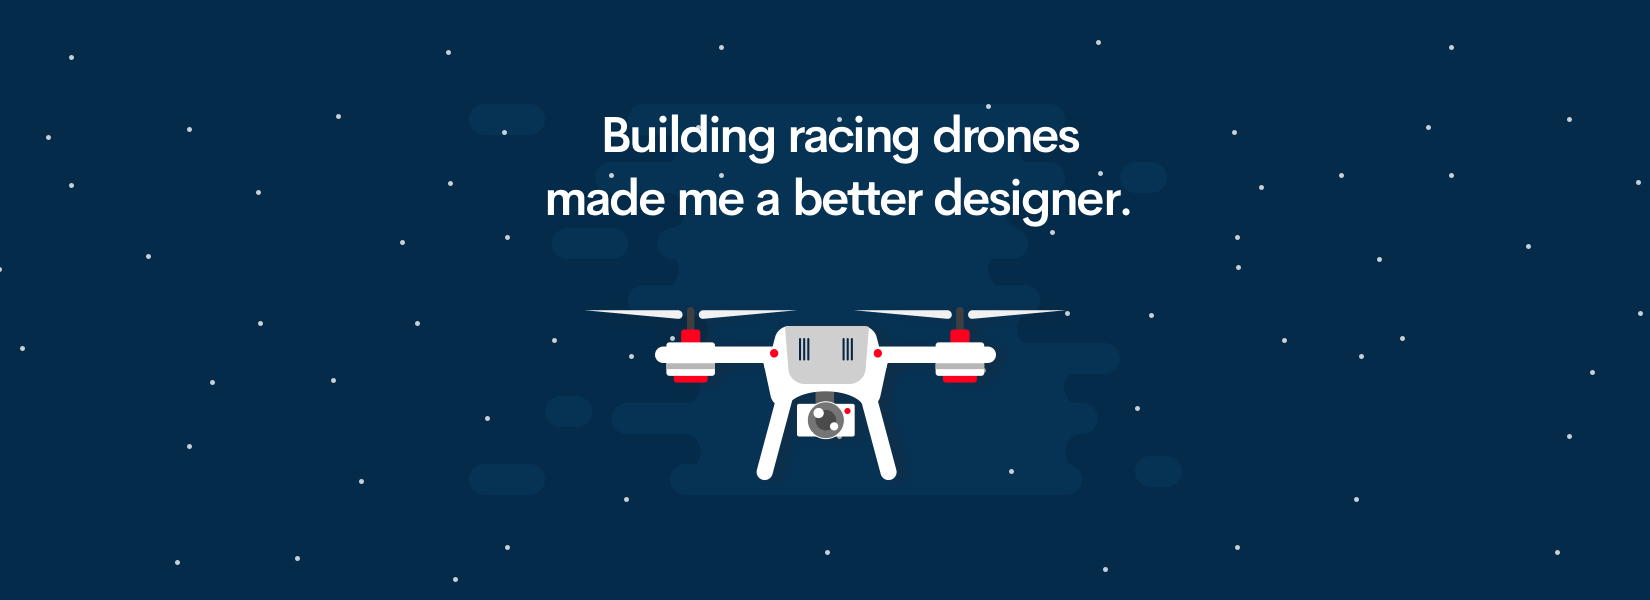 Are you a Designer? How building racing drones made me a better designer.